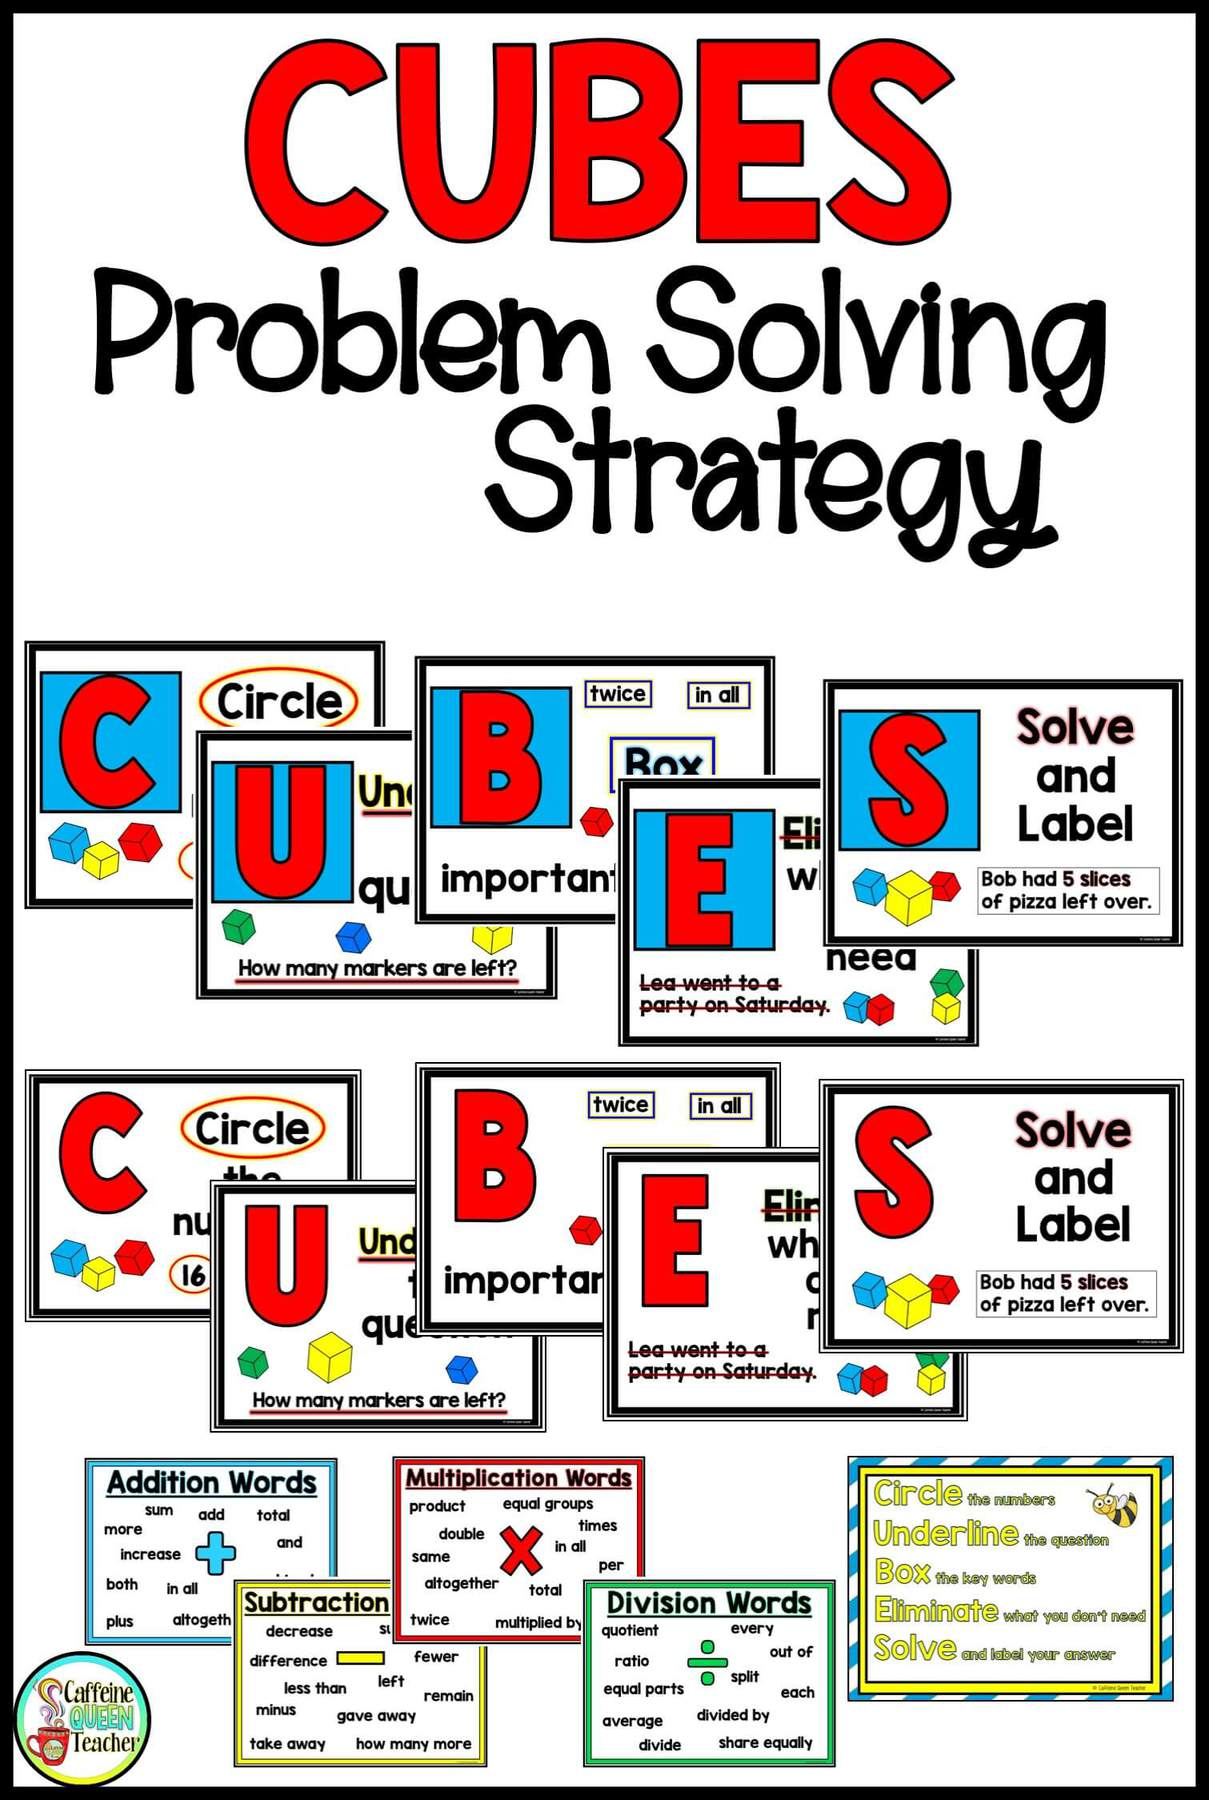 image about Cubes Math Strategy Printable named 2-Digit Multiplication Manufactured Much easier! - Caffeine Queen Instructor